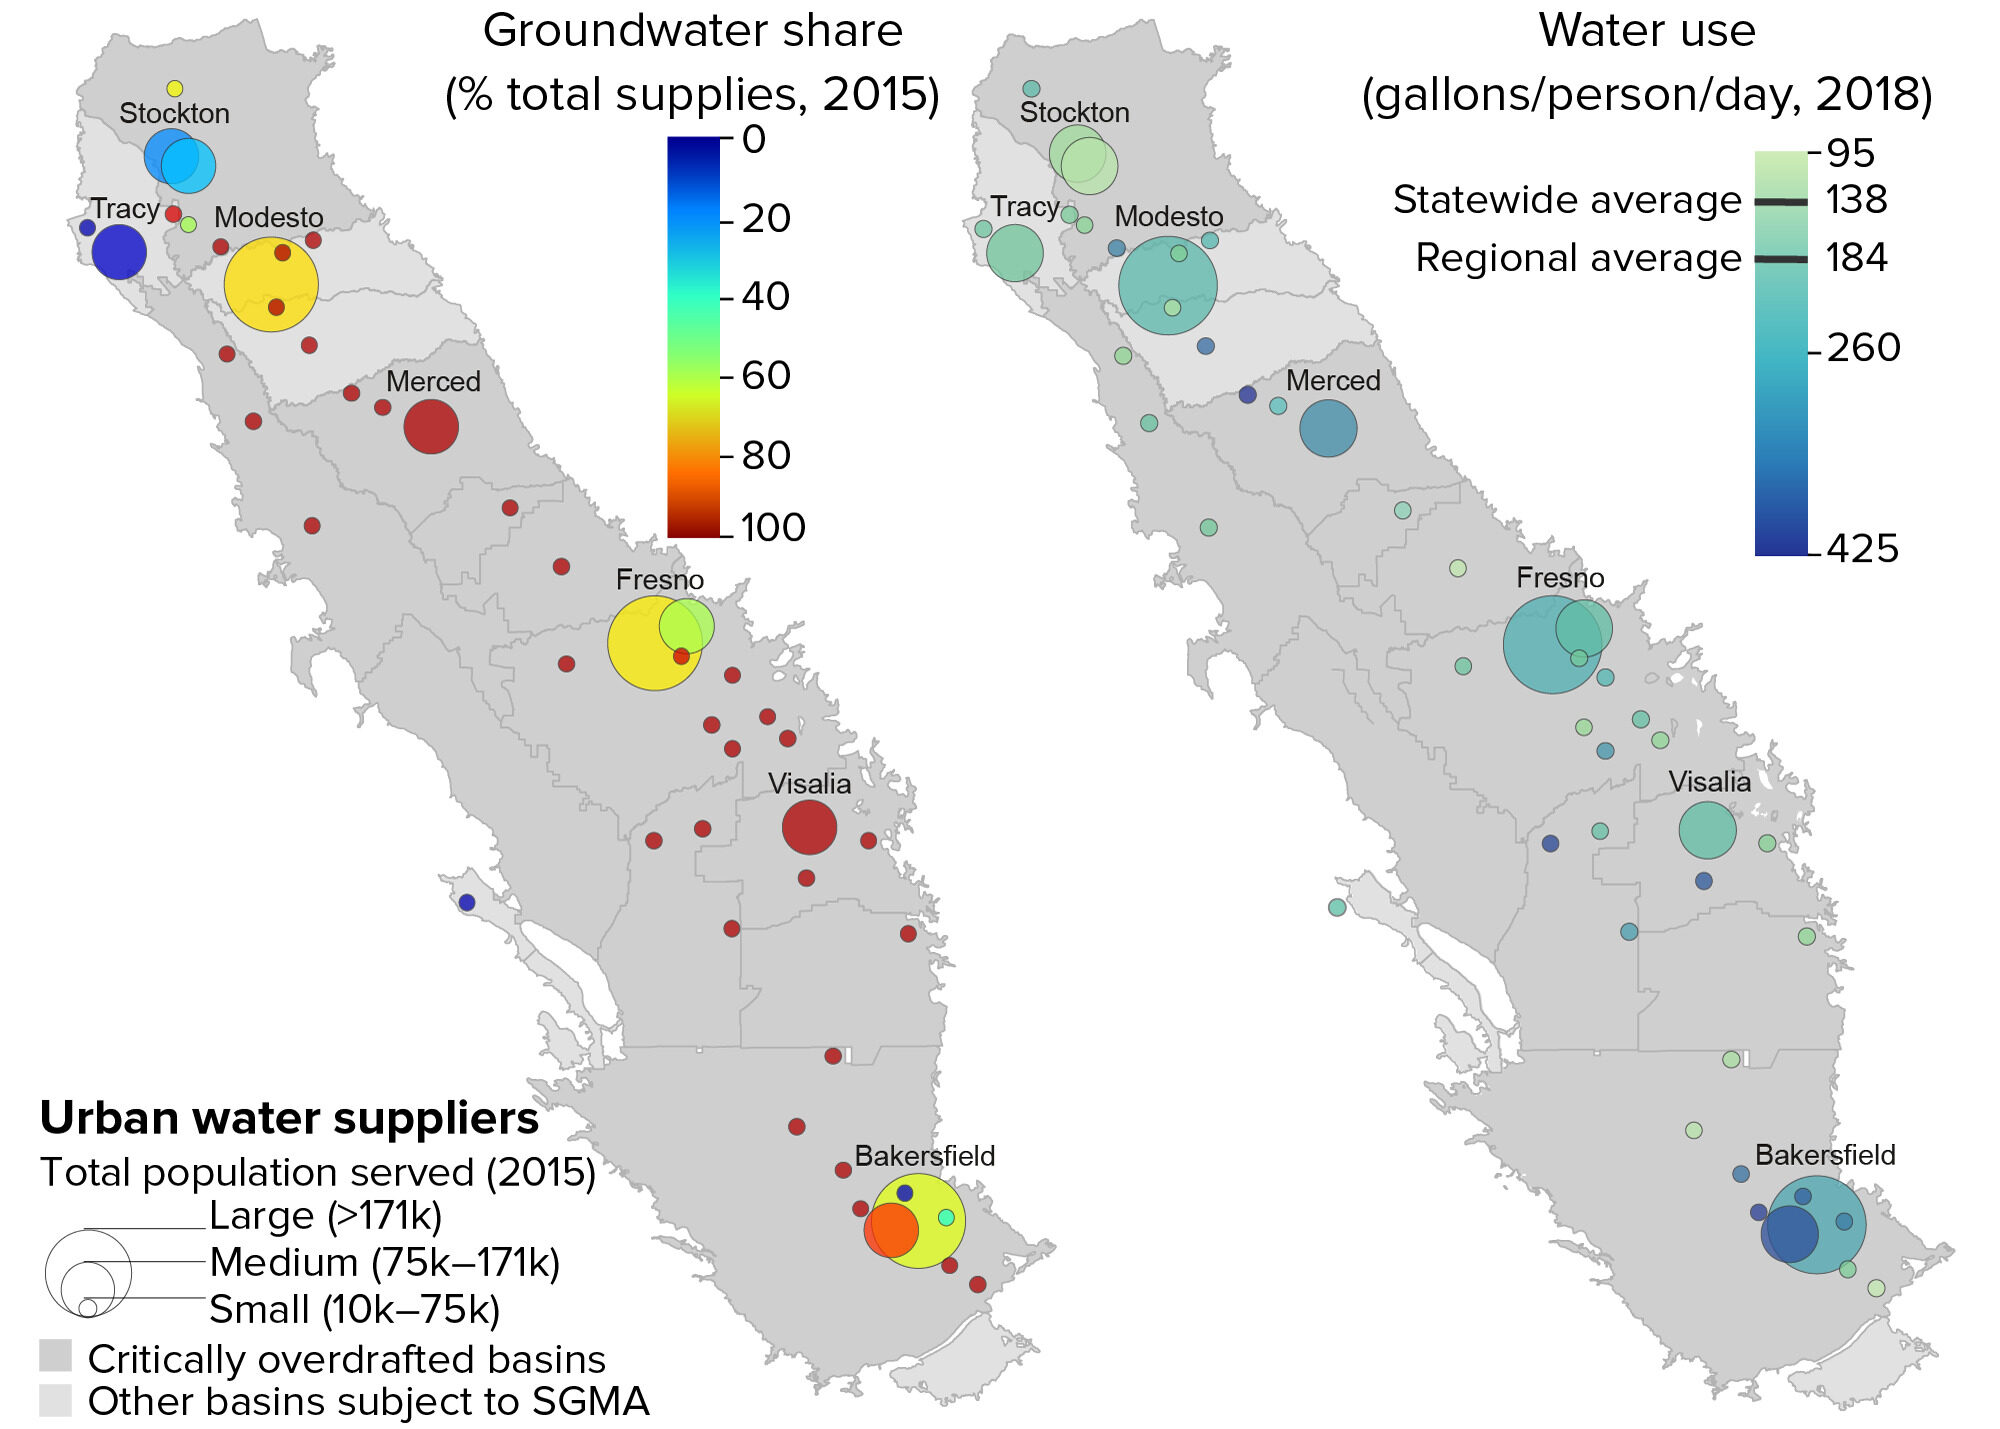 figure - Groundwater reliance is prevalent, and water use is higher than the statewide average